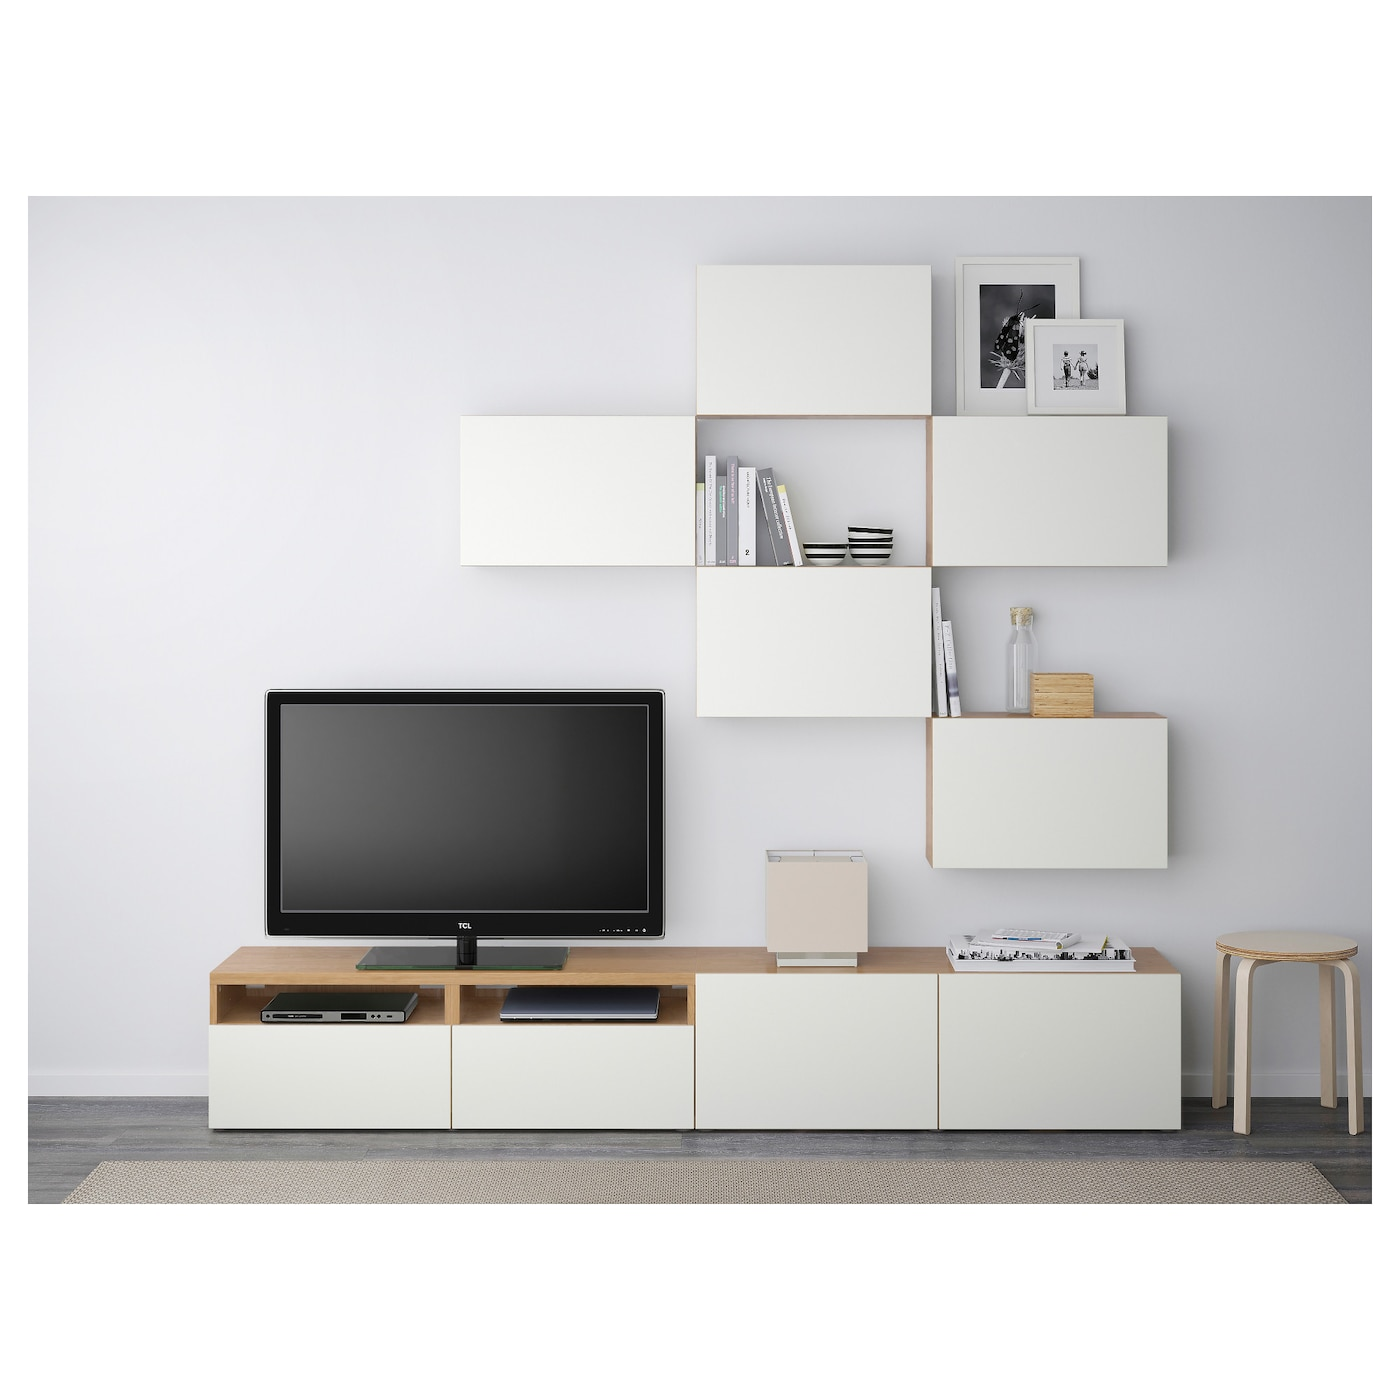 best tv storage combination oak effect lappviken white 240x20 40x204 cm ikea. Black Bedroom Furniture Sets. Home Design Ideas